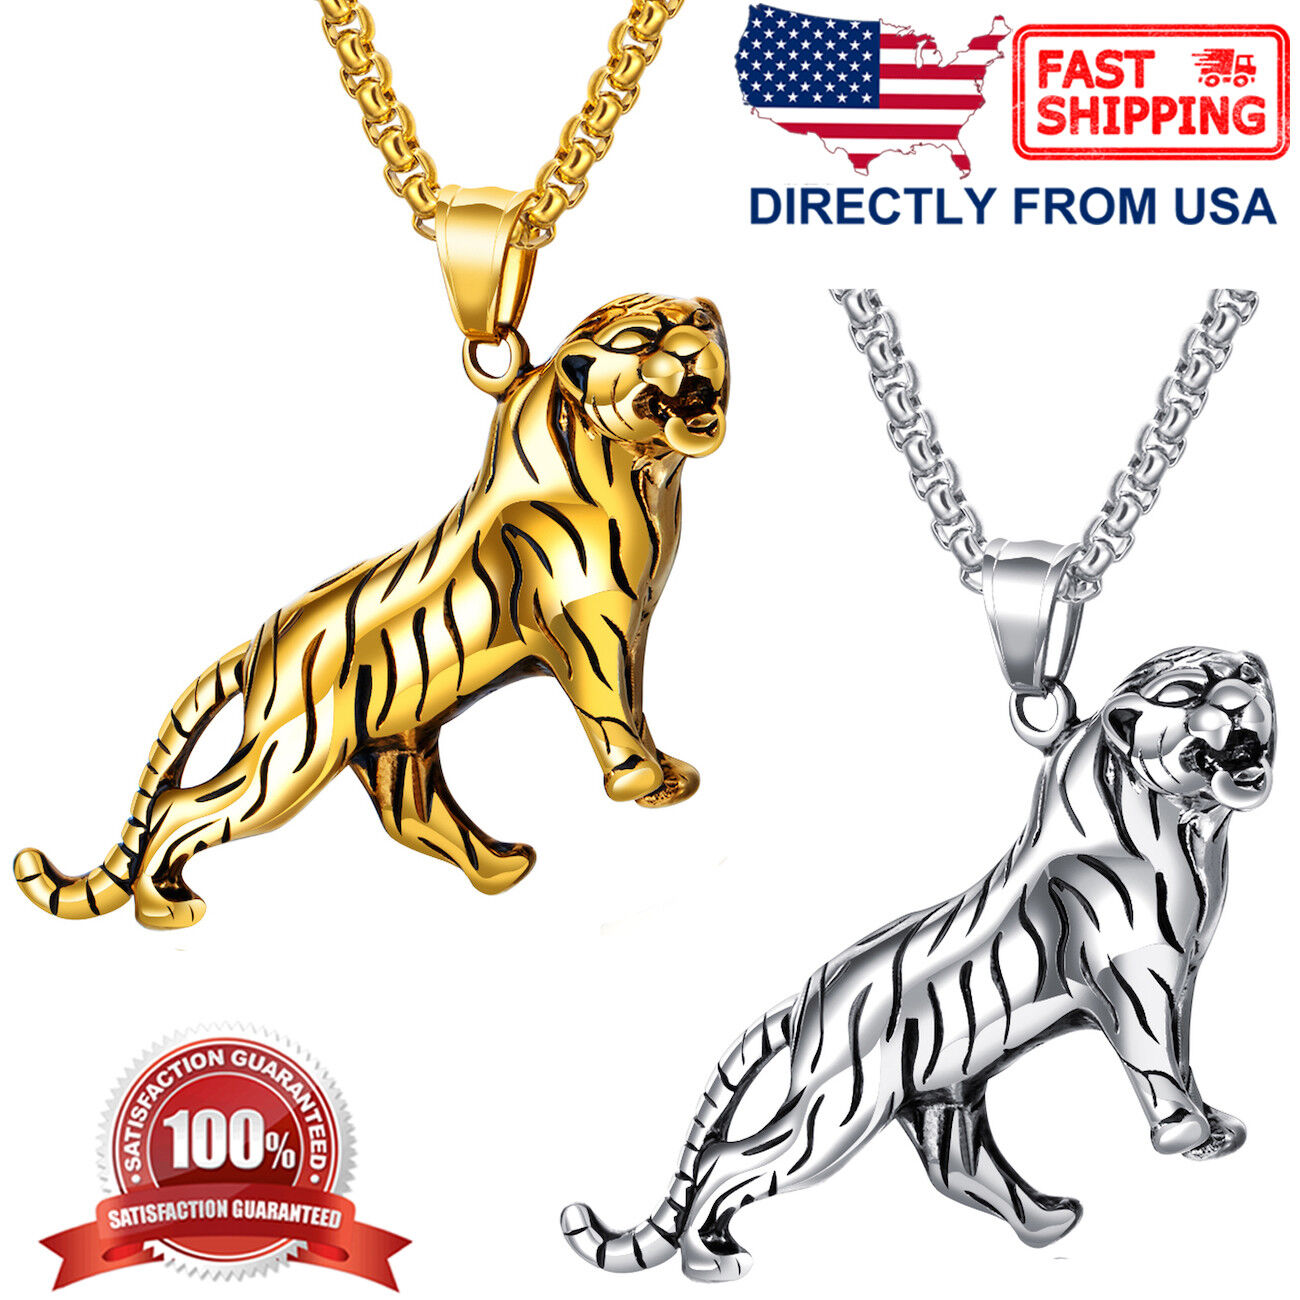 Men's Biker Jewelry, Stainless Steel Large and Heavy Leopard Pendant Necklace Chains, Necklaces & Pendants